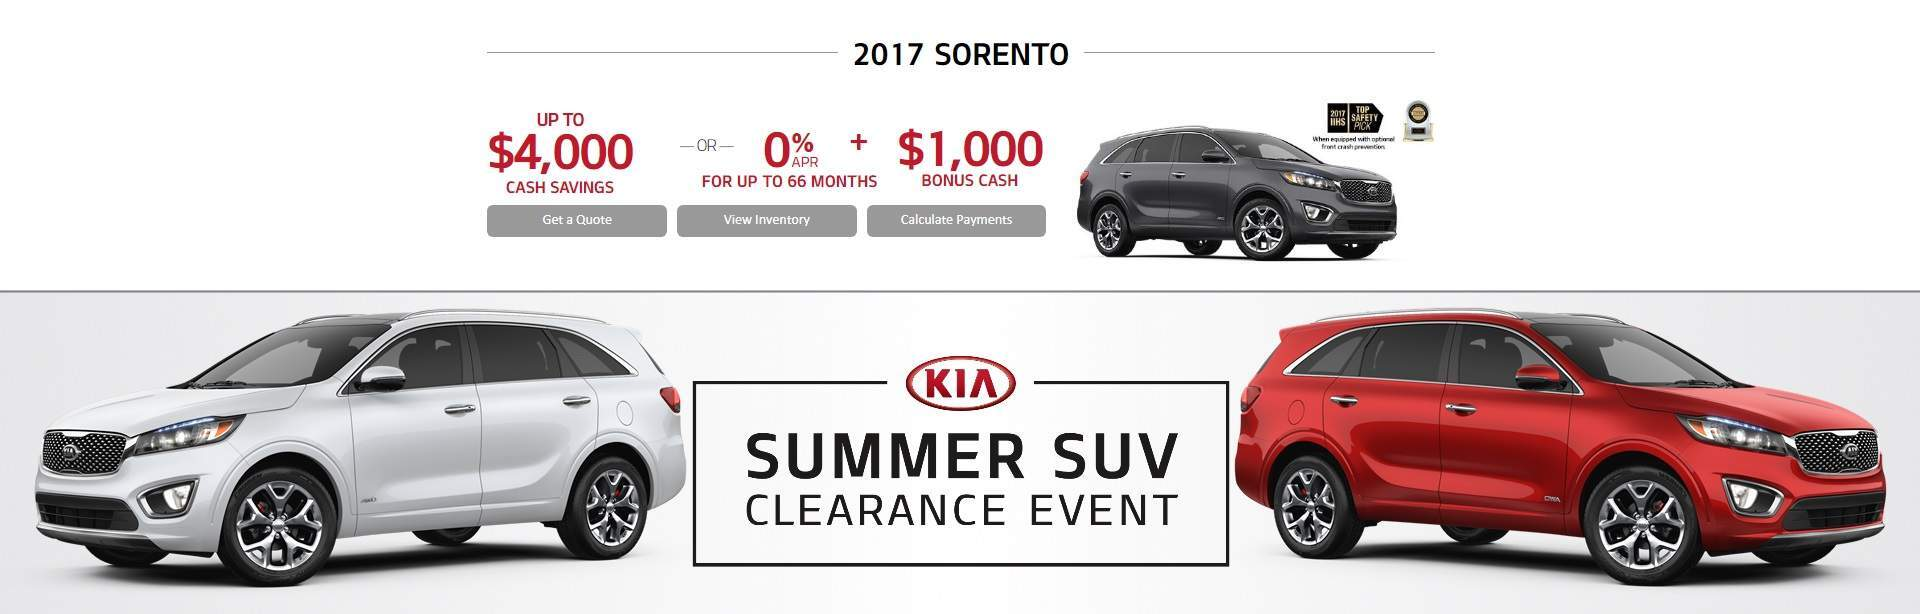 Summer SUV Clearance Event: SORENTO